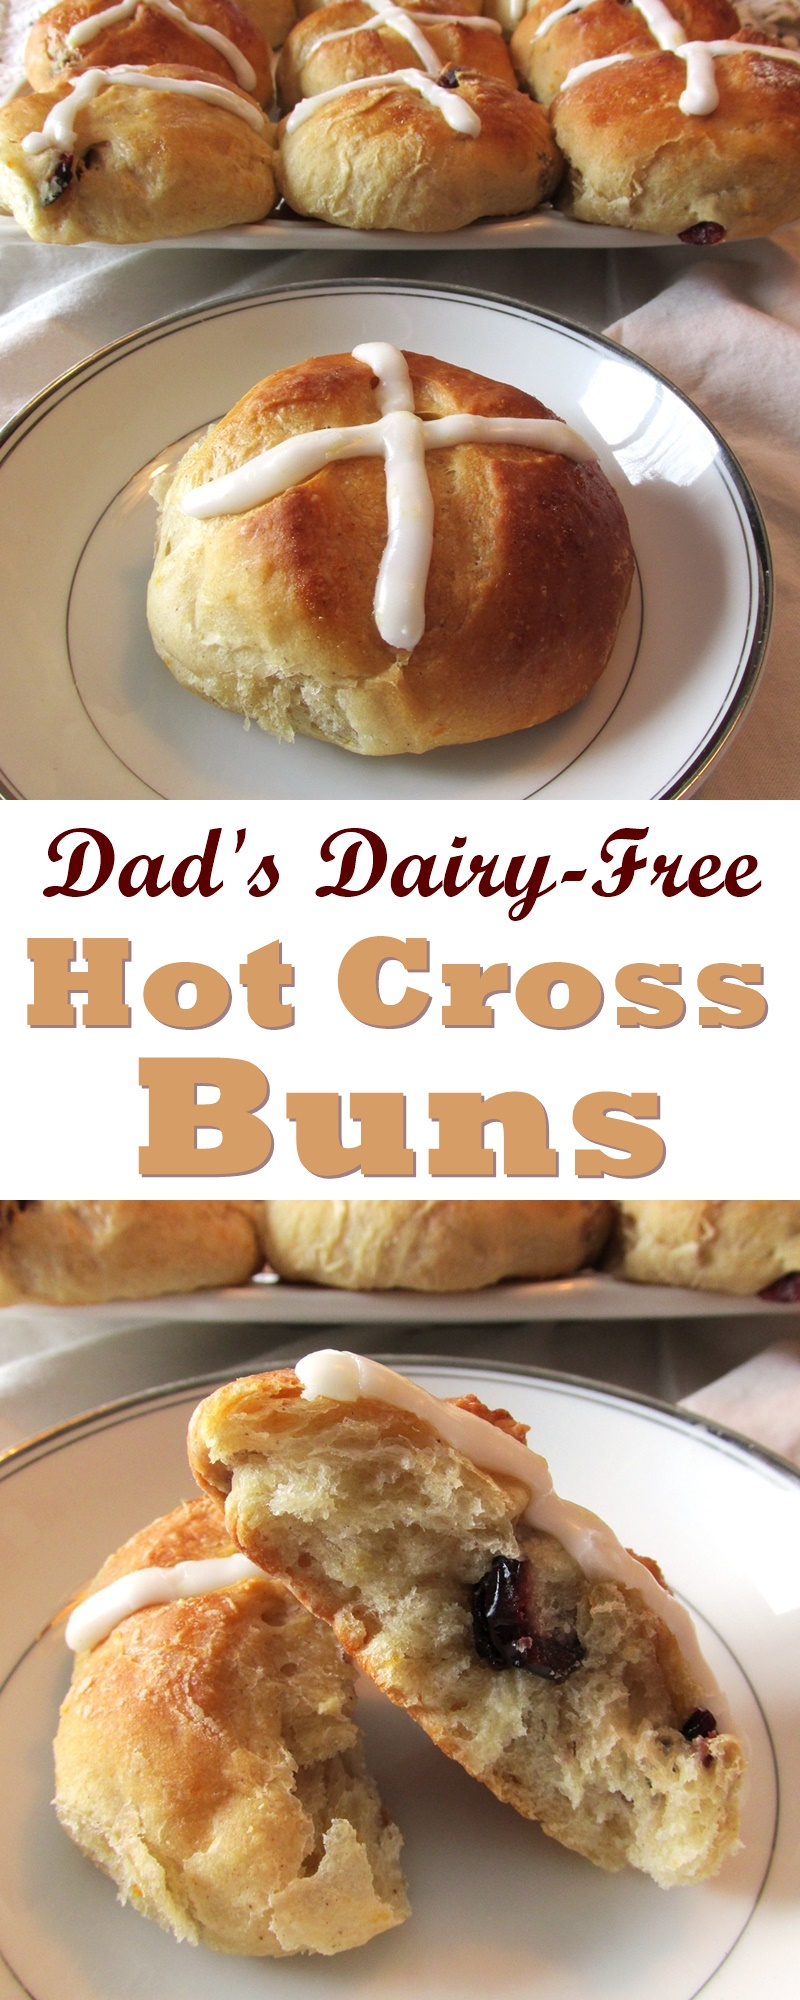 Dairy-Free Hot Cross Buns Recipe (Nut-Free + Vegan Optional)